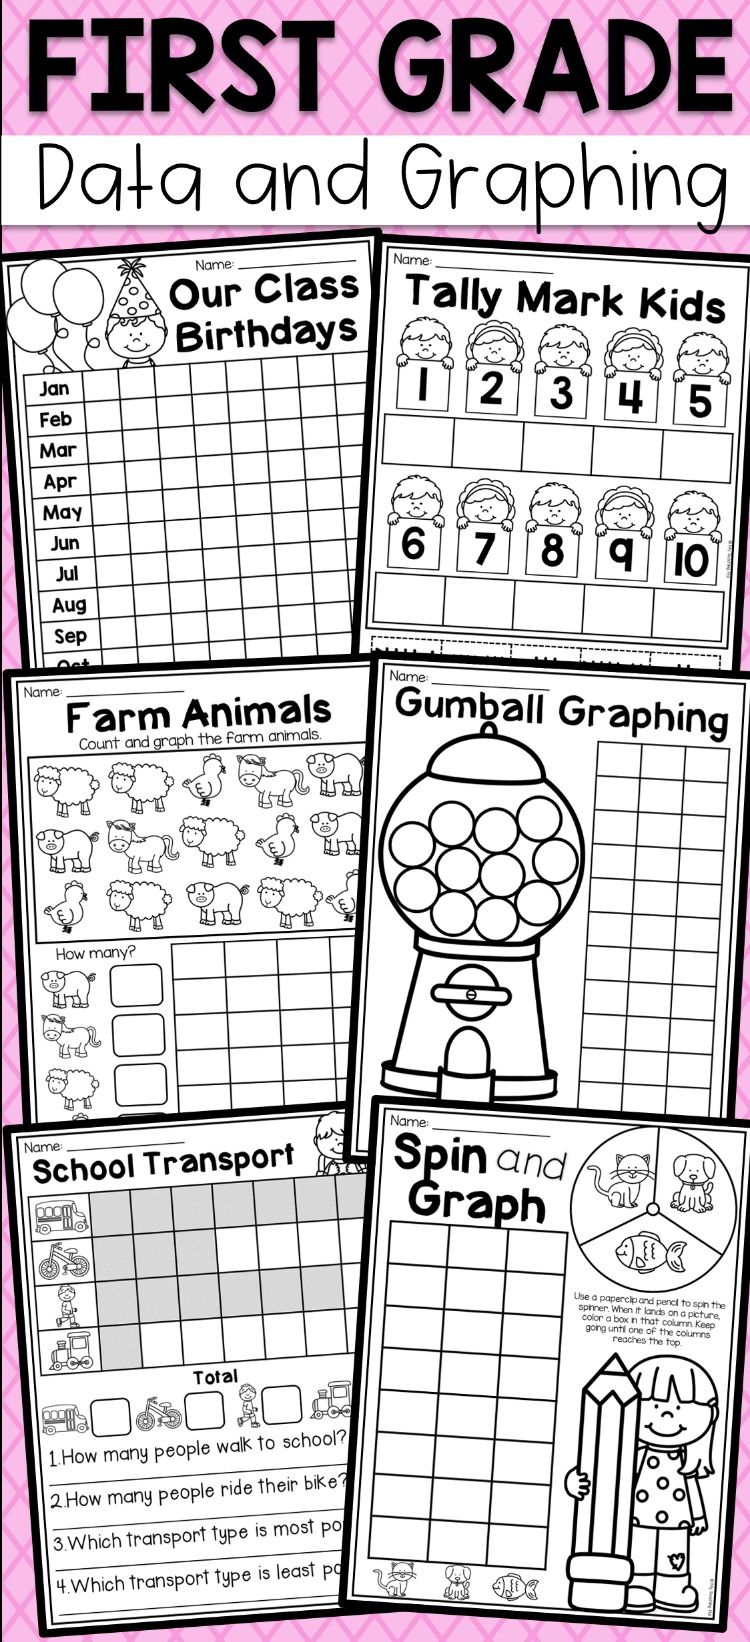 hight resolution of First Grade Data and Graphing Worksheets - Distance Learning   Graphing  first grade